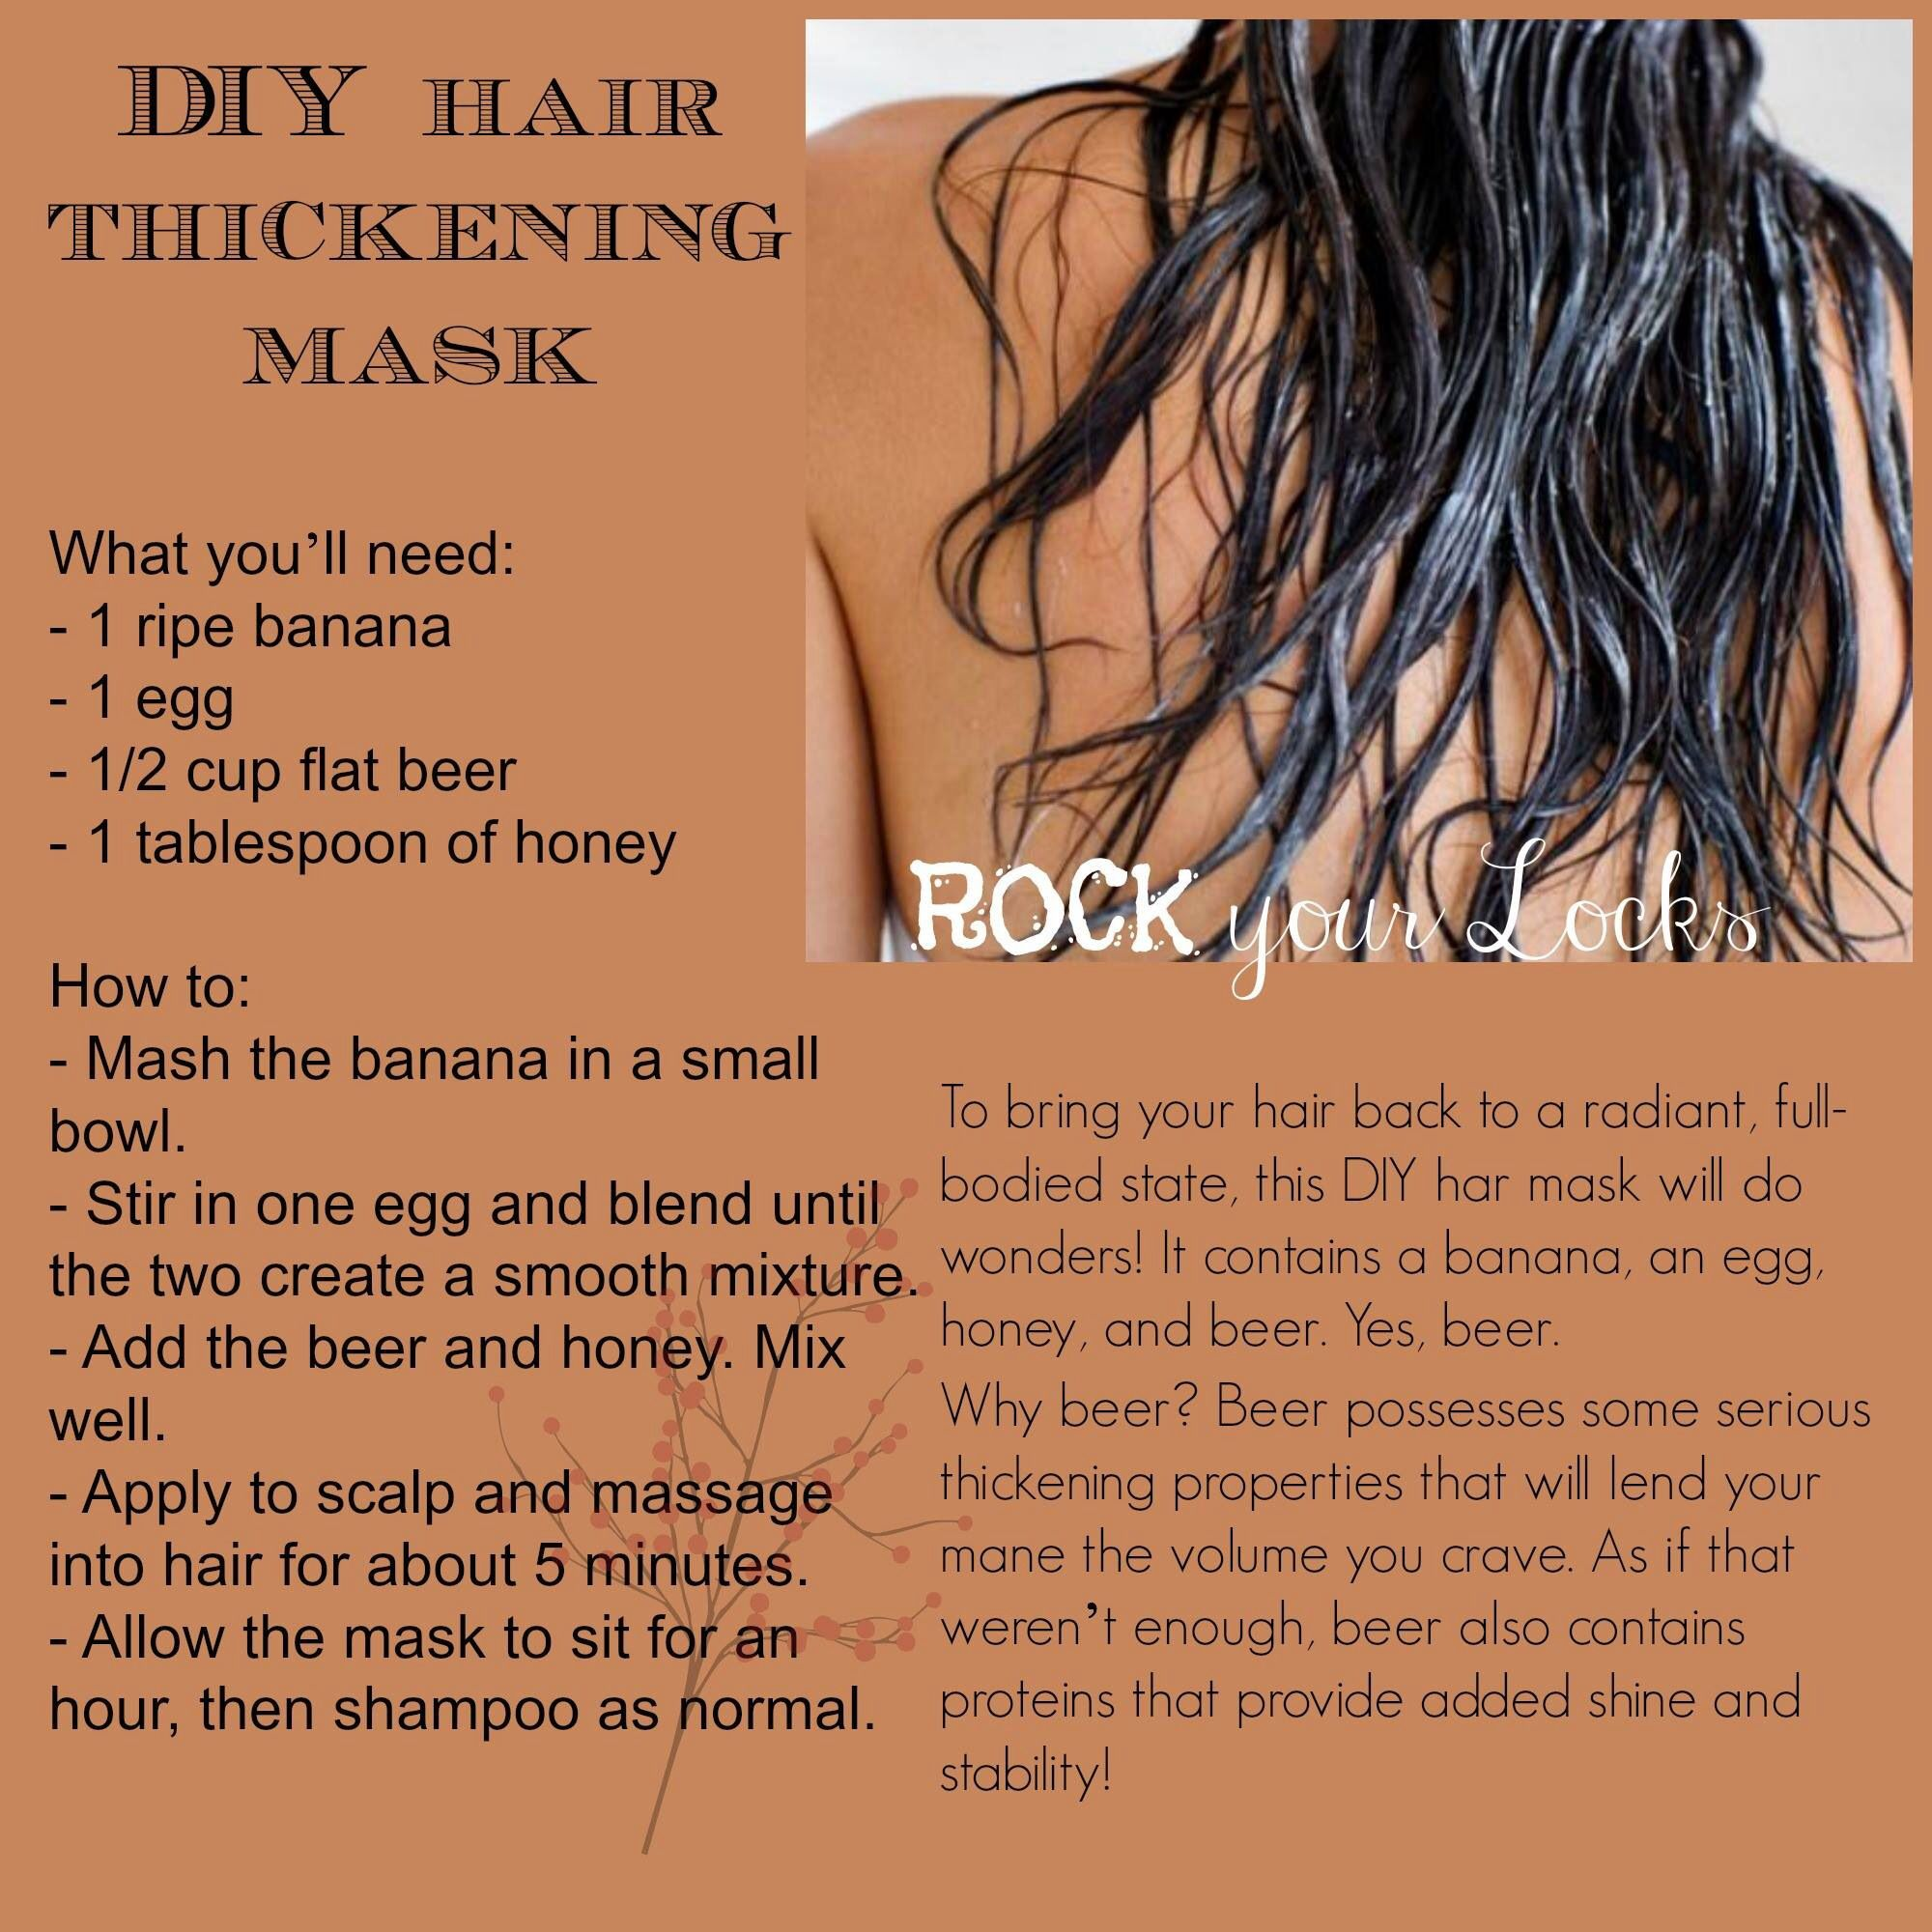 Hair Thickening Mask! I hope this works on my crazy thin